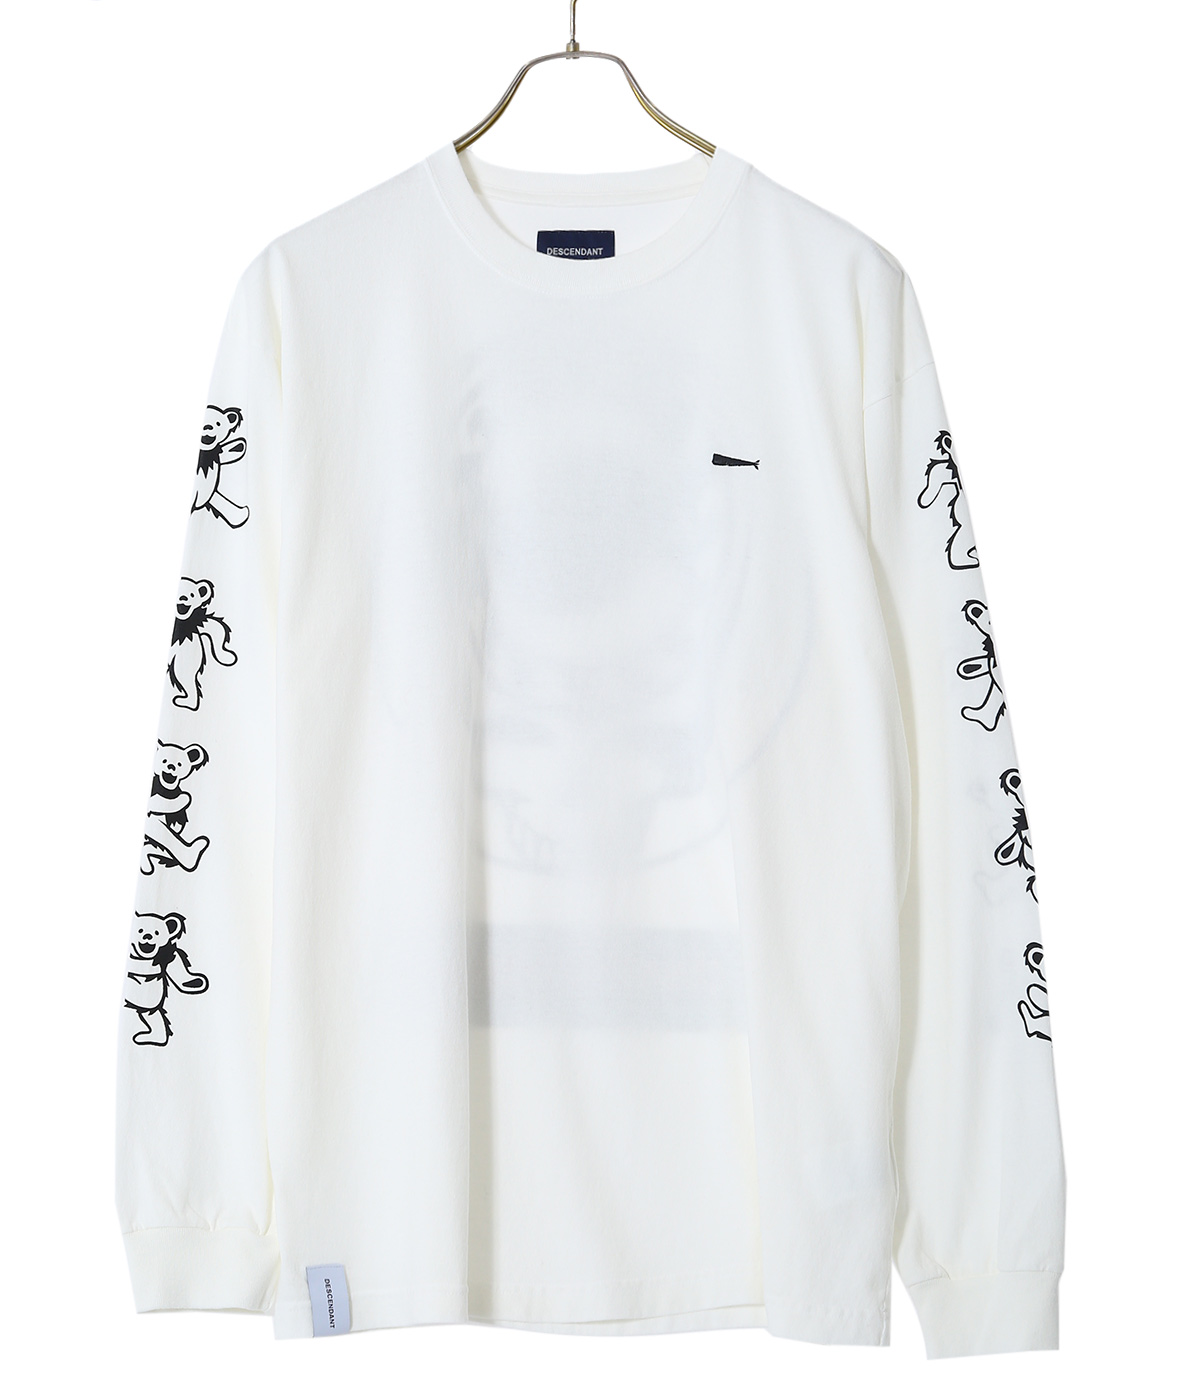 VORTEX CREW NECK LS